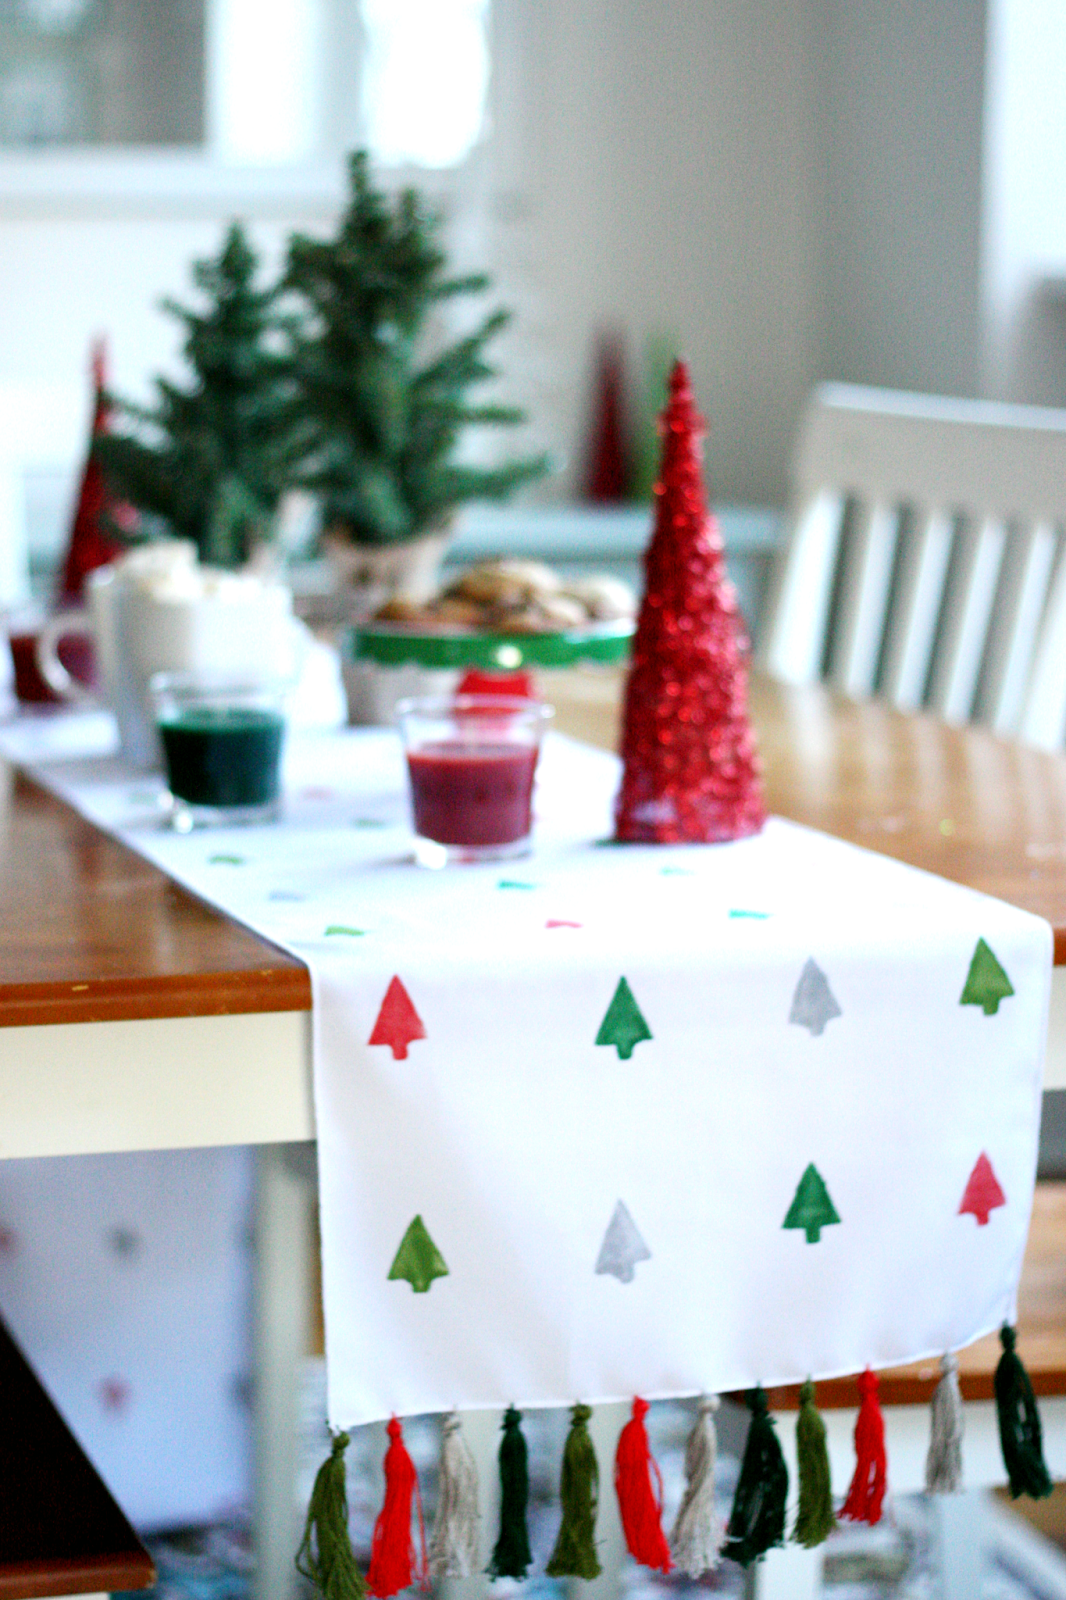 Christmas Table Runner Diy.Diy Holiday Table Runner The Pretty Life Girls